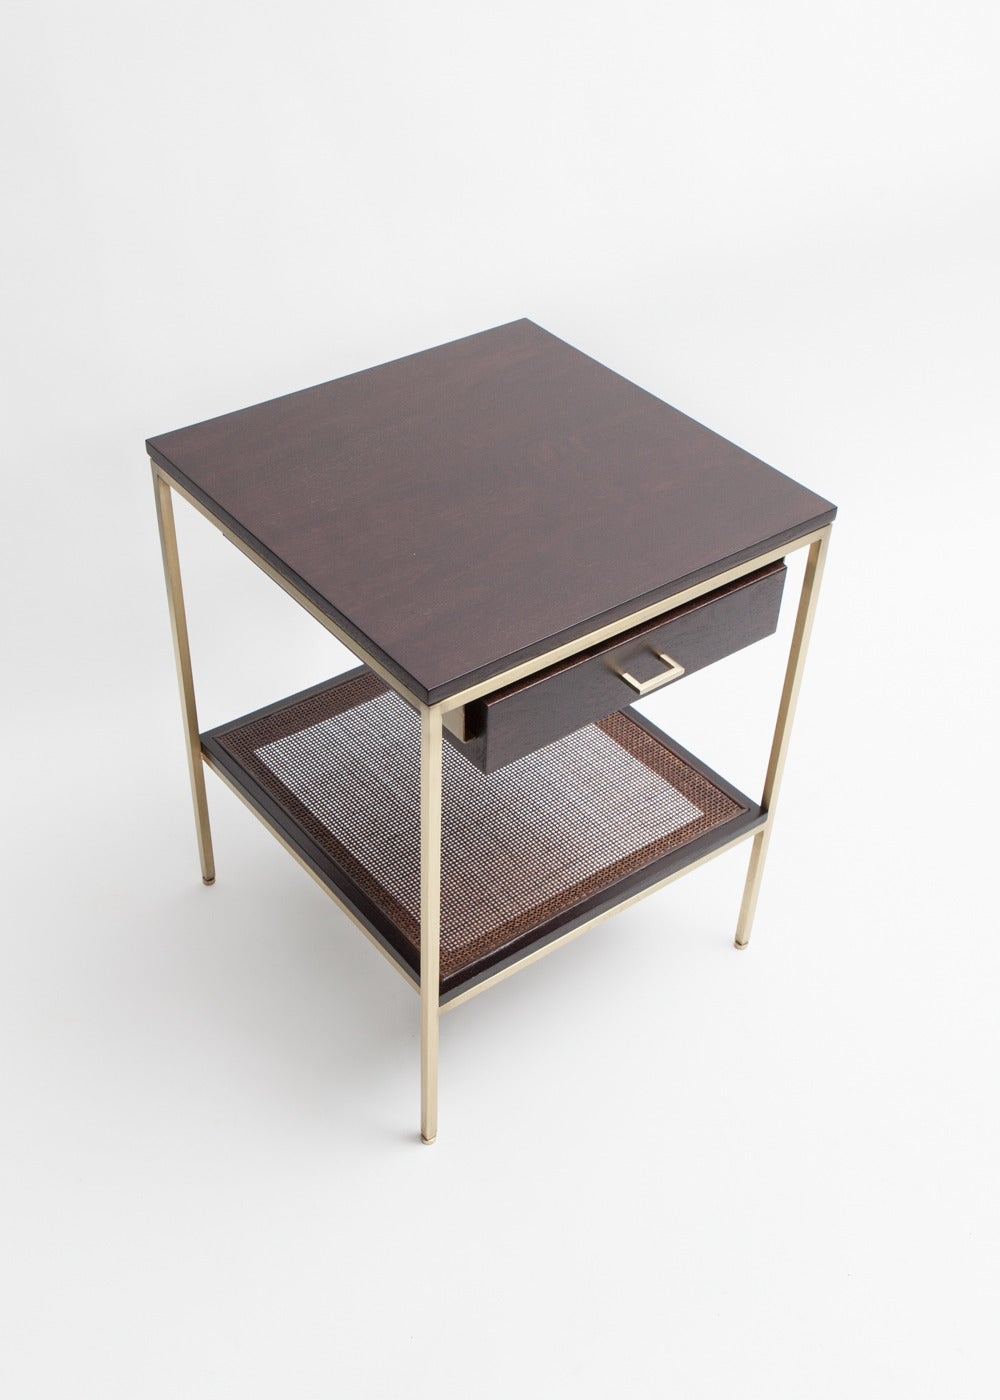 Pair of reGeneration custom bedside tables which are made to order. They are shown here with an ebonized wood top and drawer with cane shelf. The frame and hardware are brass-plated steel.